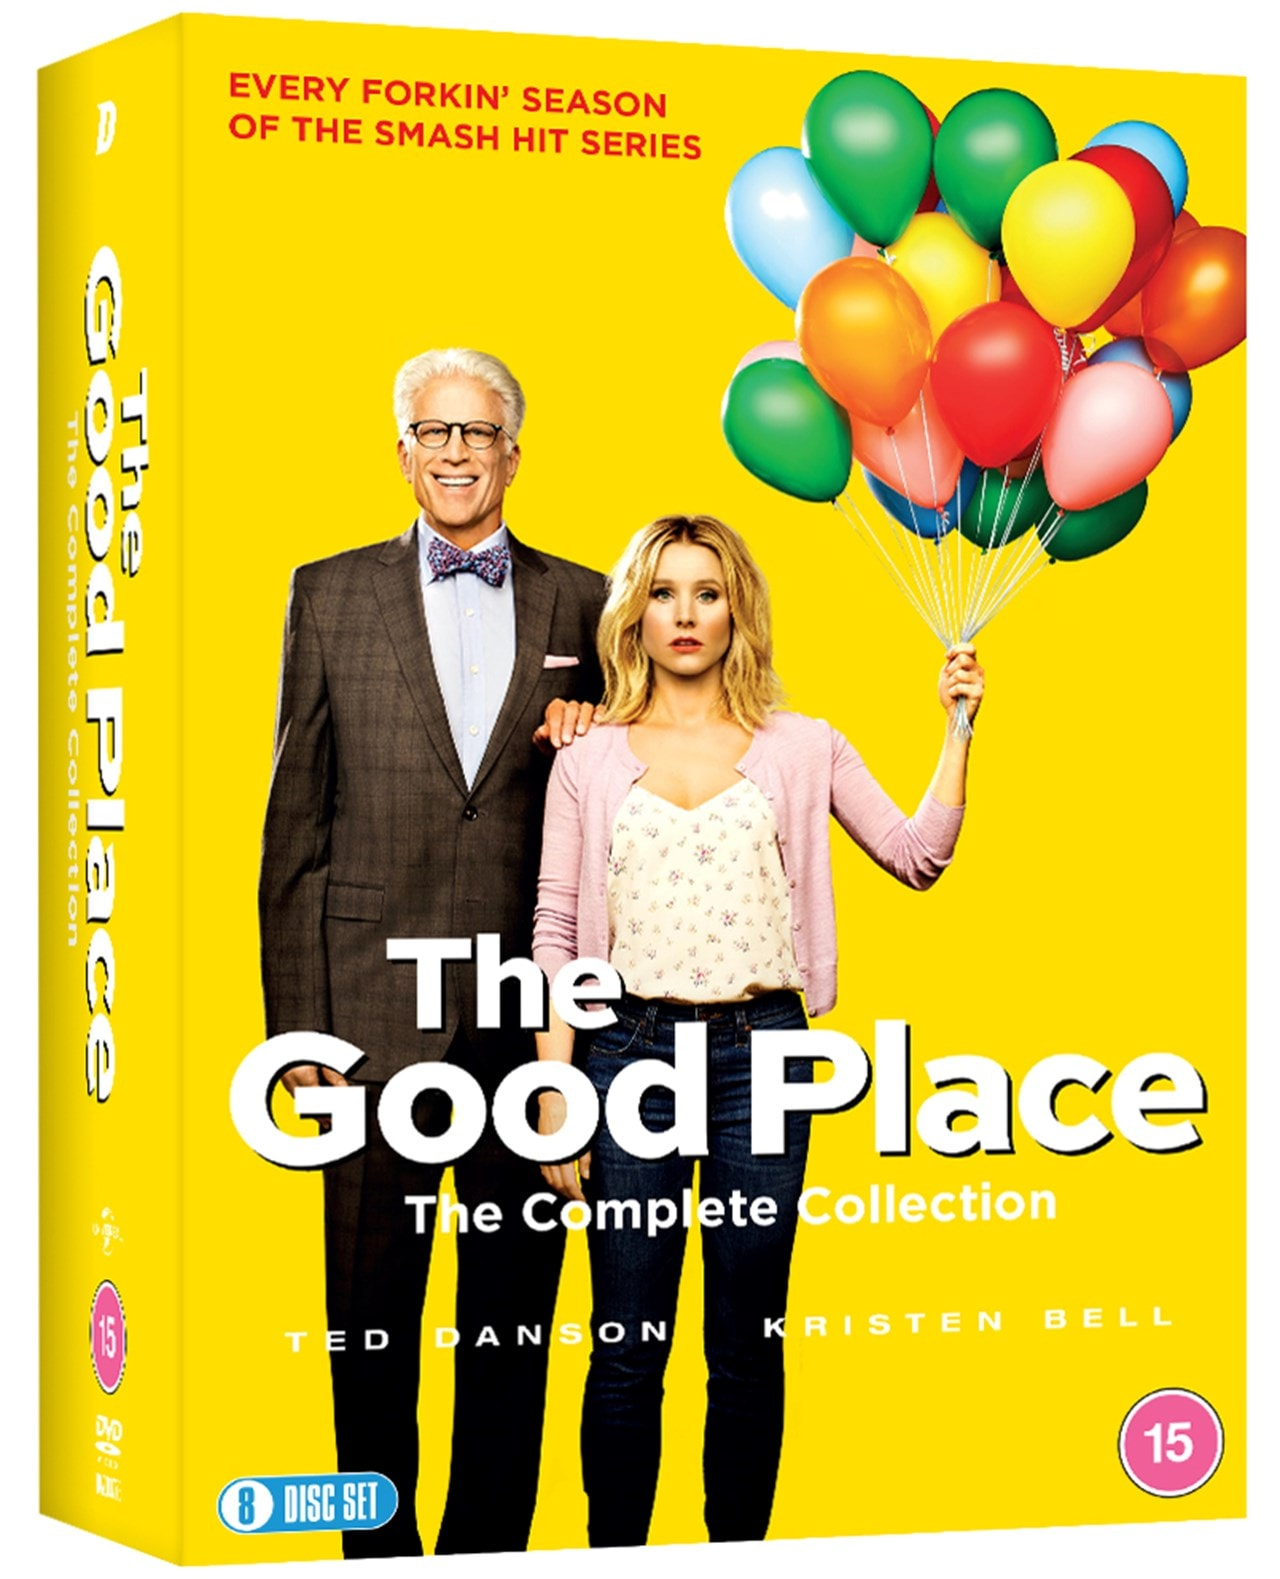 The Good Place: The Complete Collection - 2